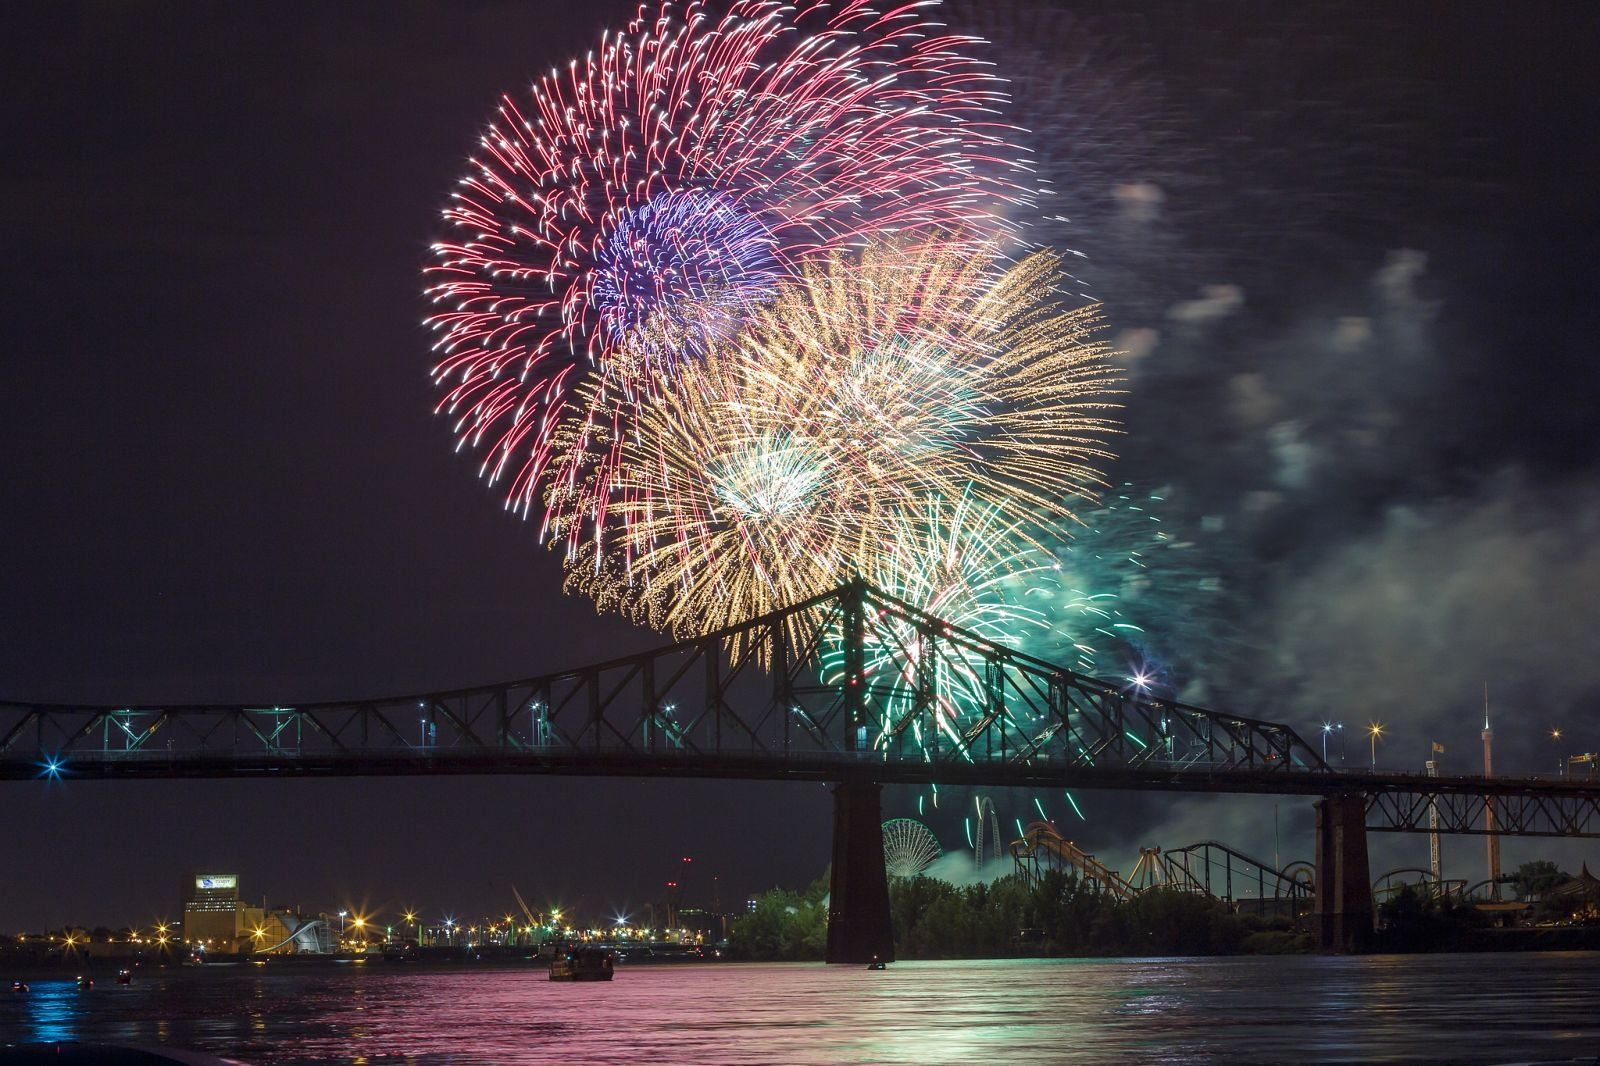 montreal_fireworks_competition_201717_1100.jpg